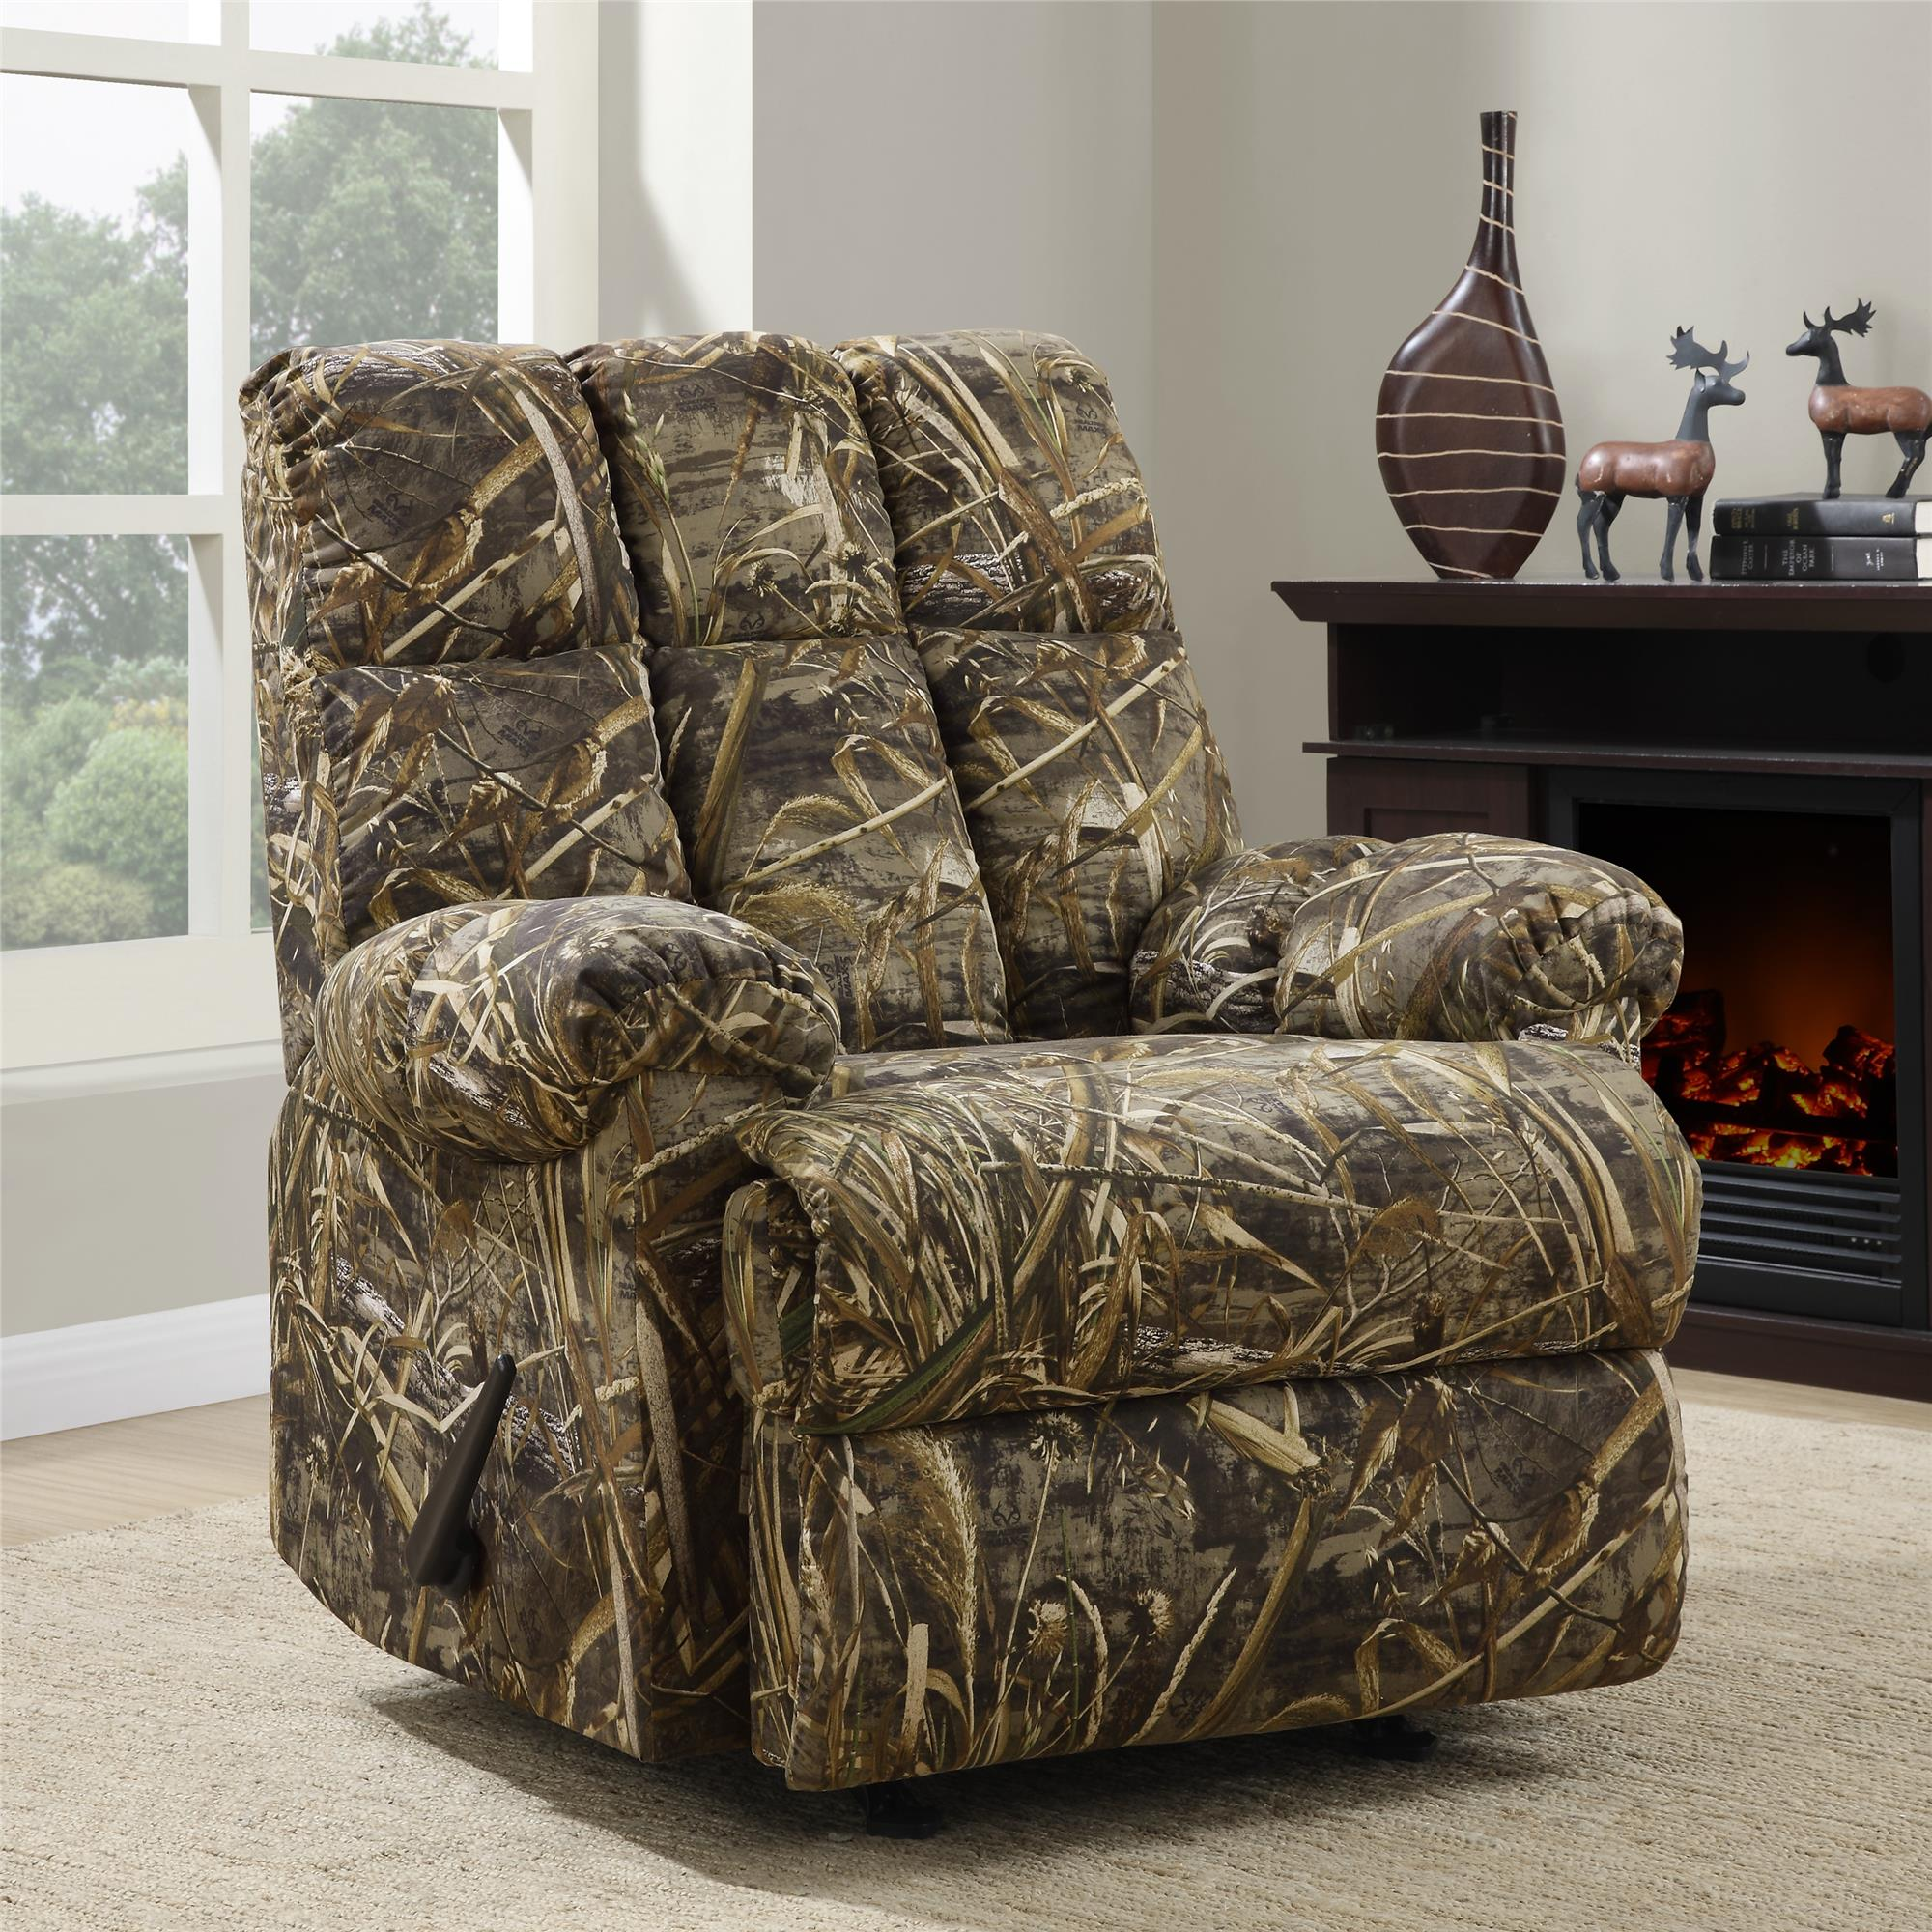 sears recliner chairs where to rent chair covers near me recliners dorel home furnishings realtree camouflaged rocker